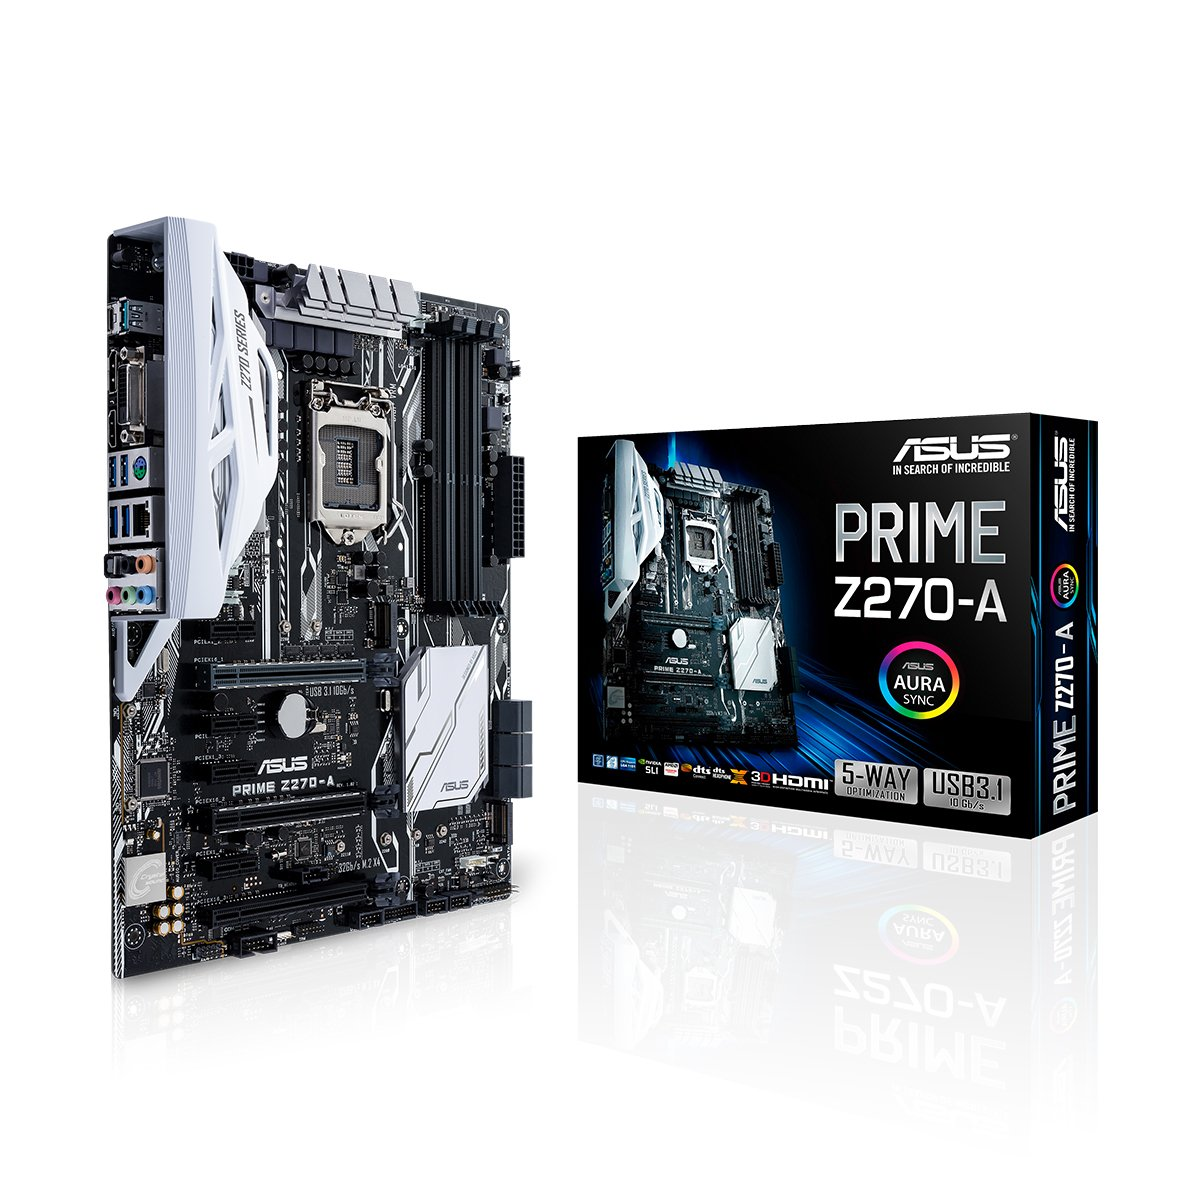 Asus Prime Z270 A Lga1151 Ddr4 Dp Hdmi Dvi M2 Usb 31 32153 Pcie Wi Fi Chip Atx Motherboard Computers Accessories